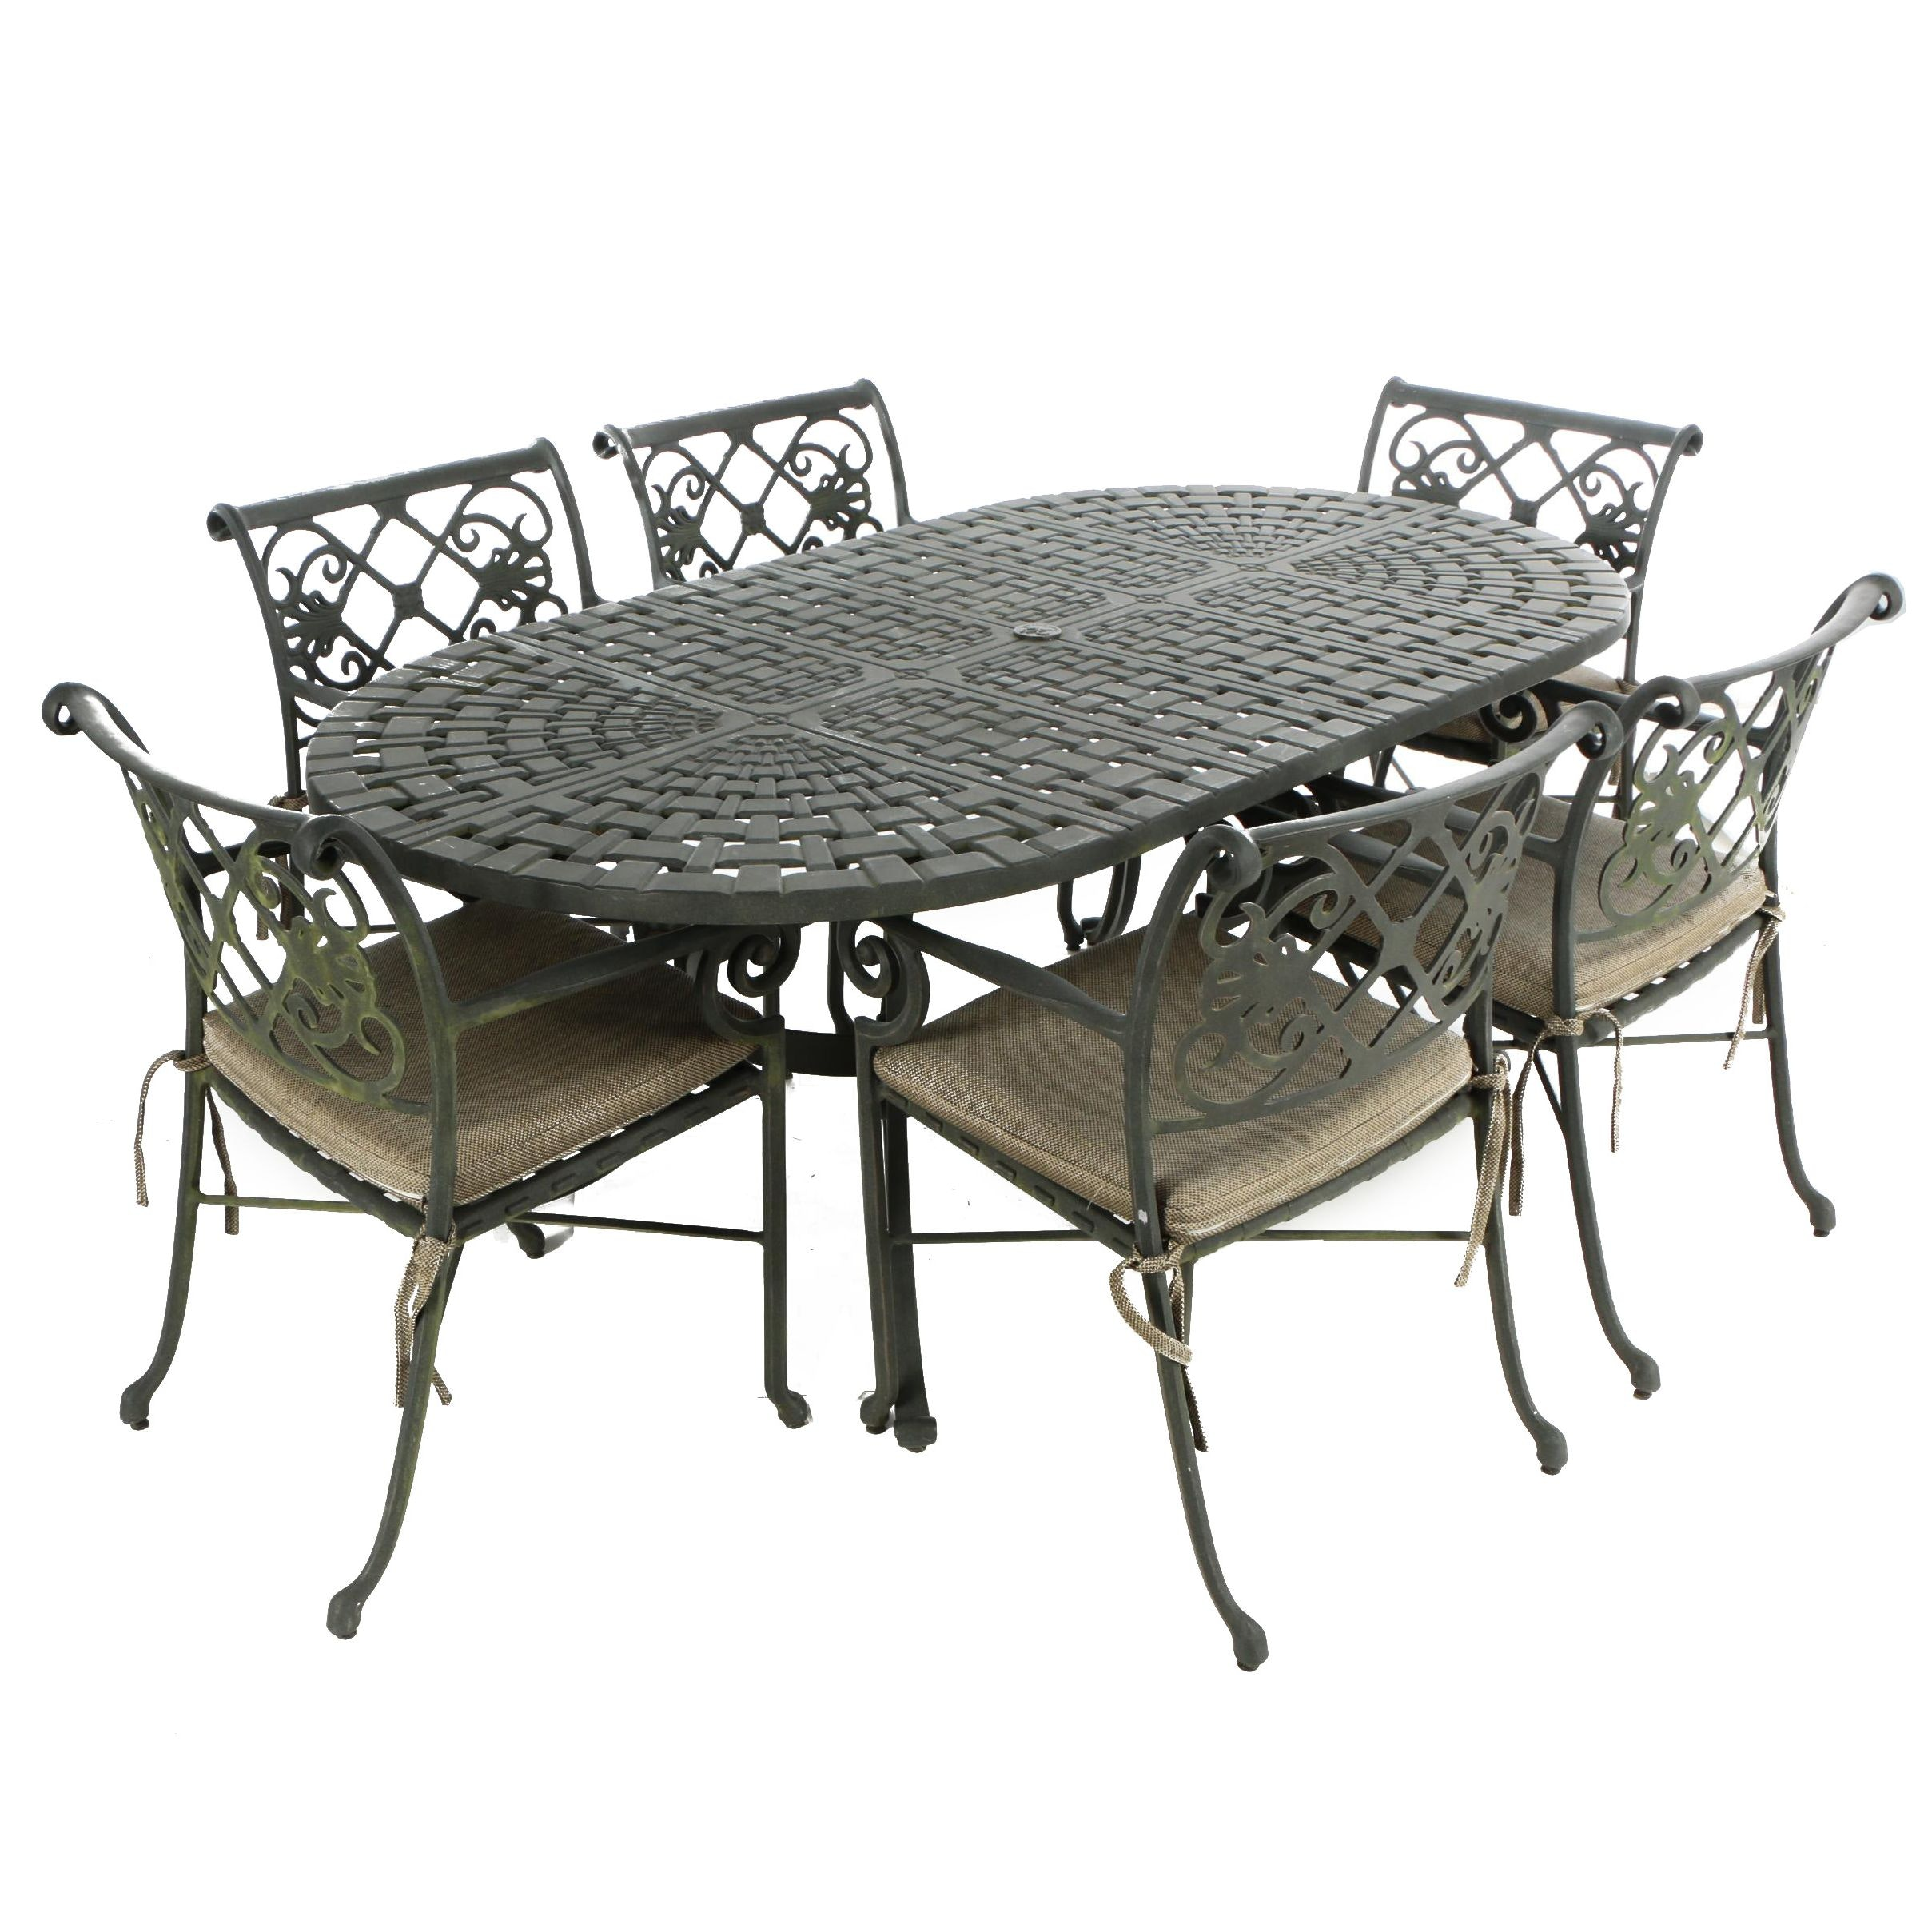 Contemporary Cast-Aluminum Seven-Piece Patio Dining Set by Windham Castings